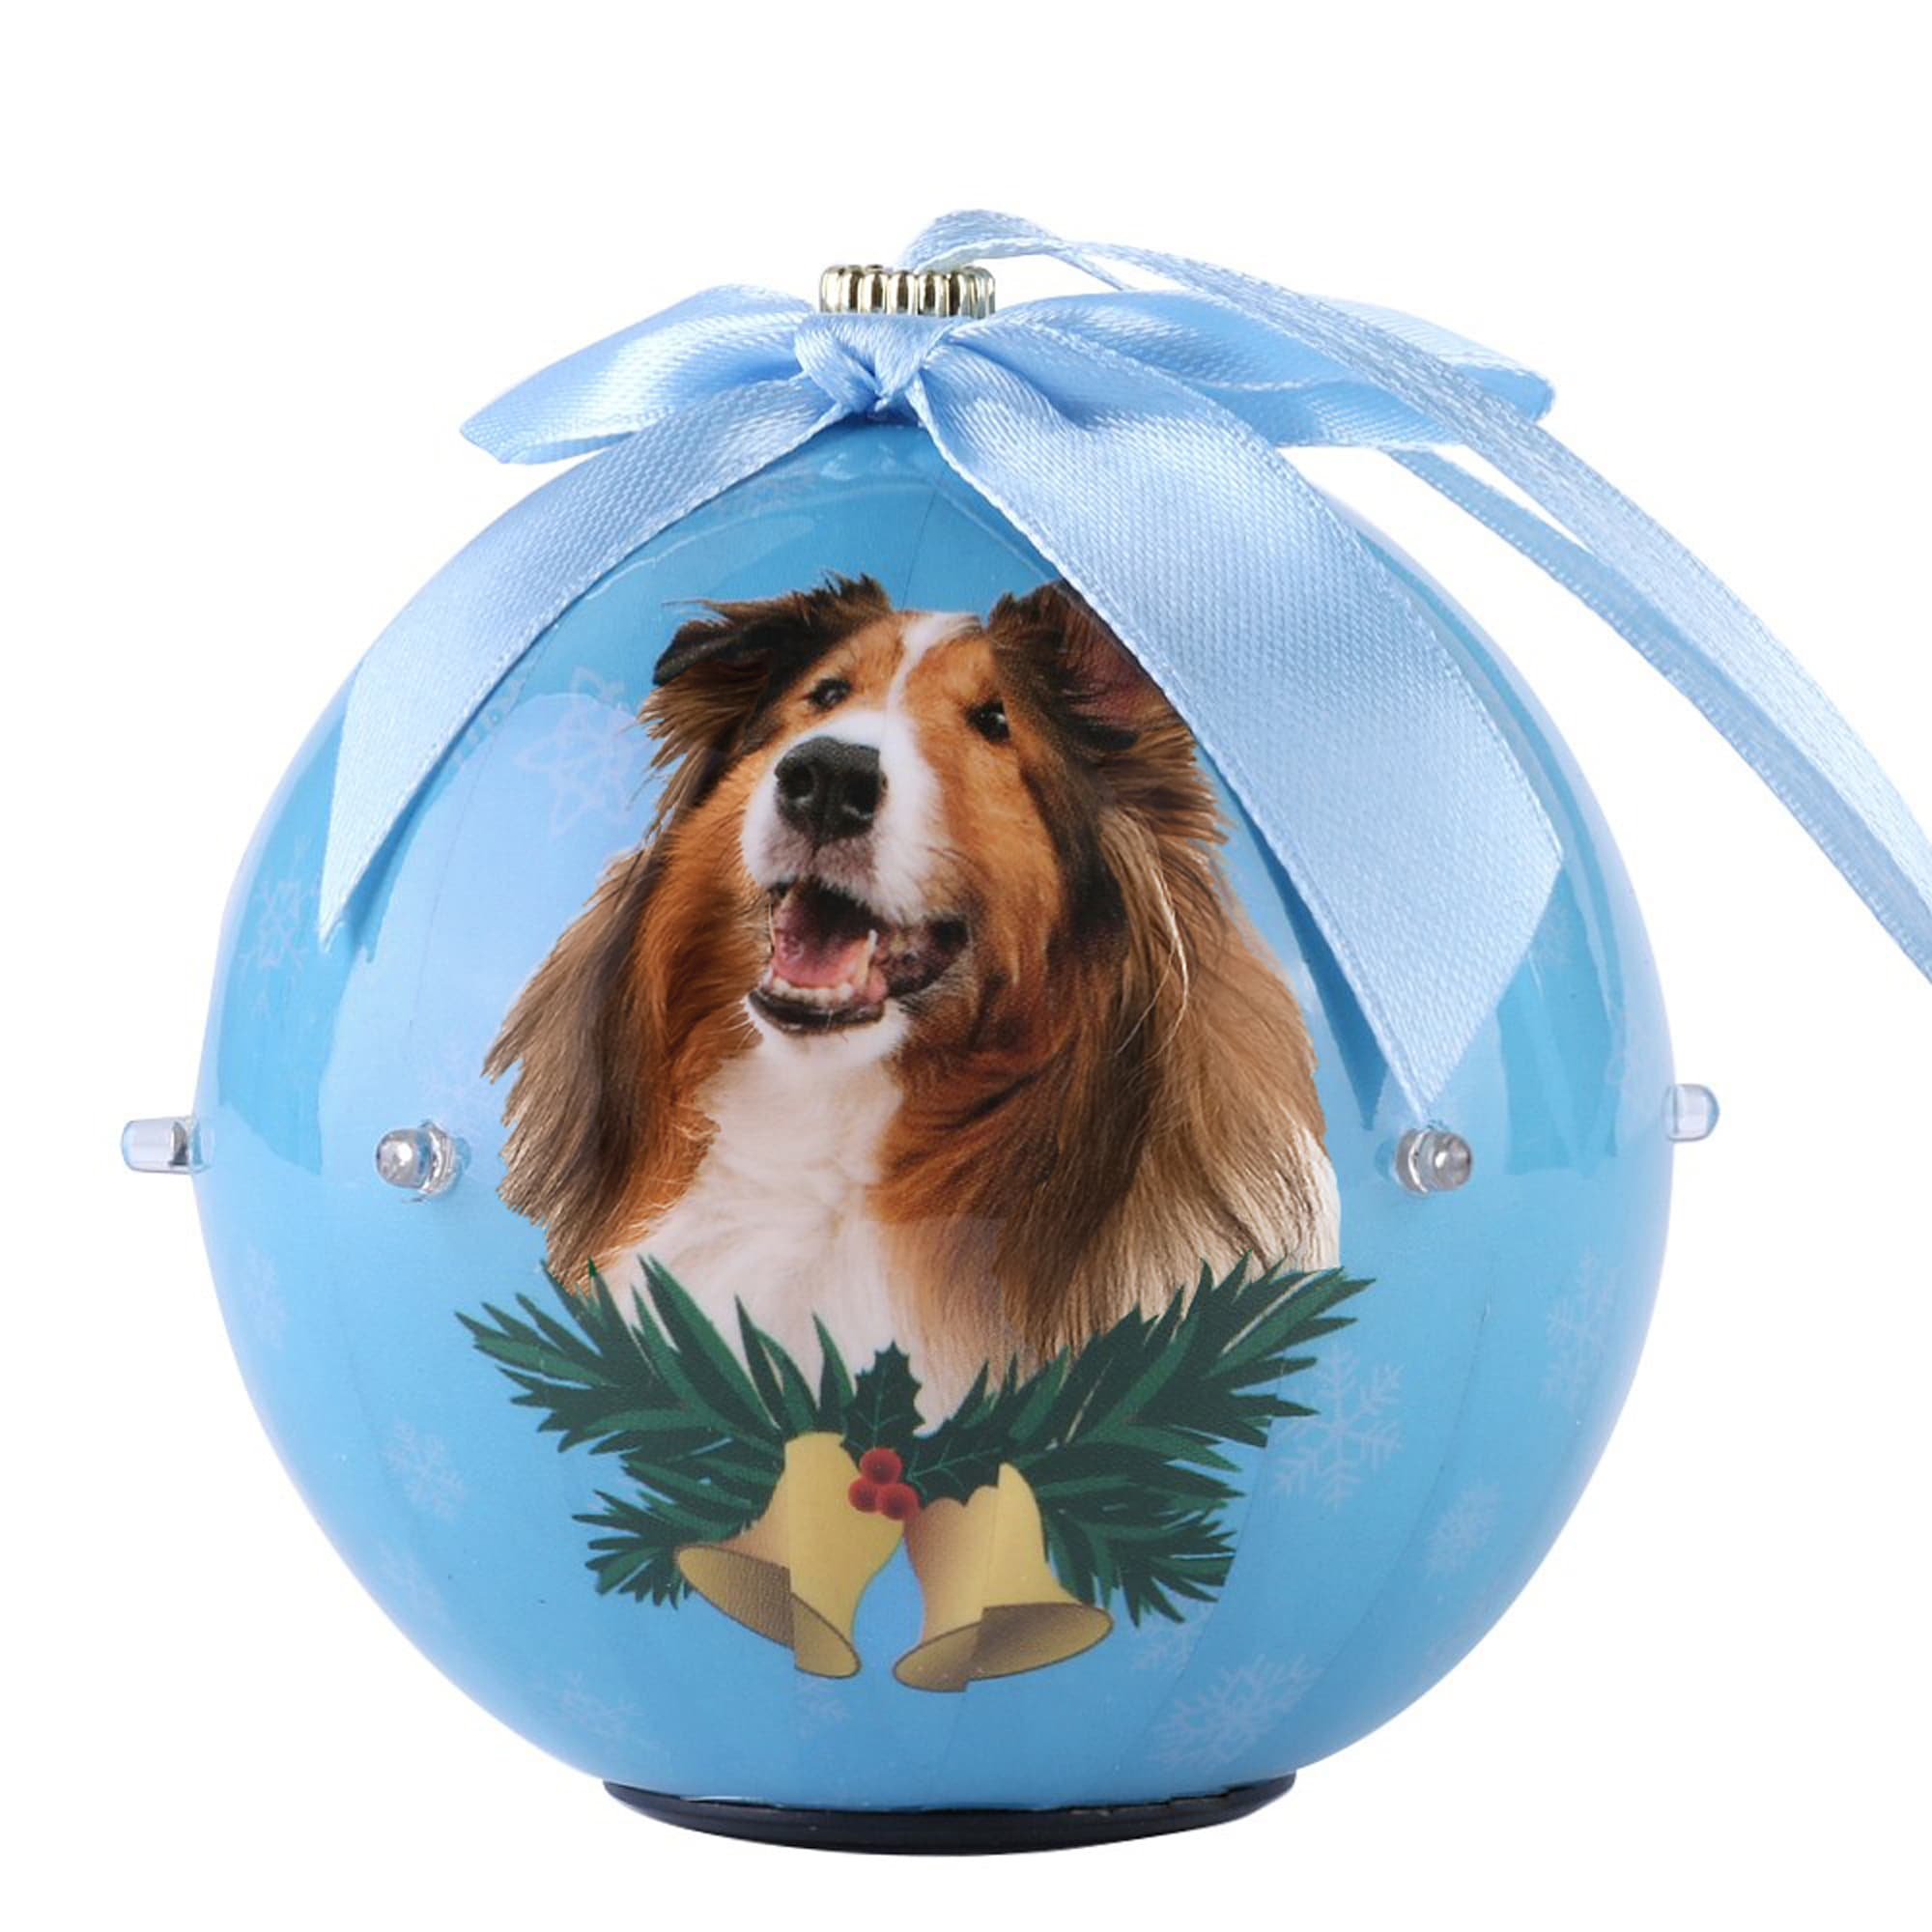 CueCuePet Collie Dog Collection Twinkling Lights Christmas Ball Ornament